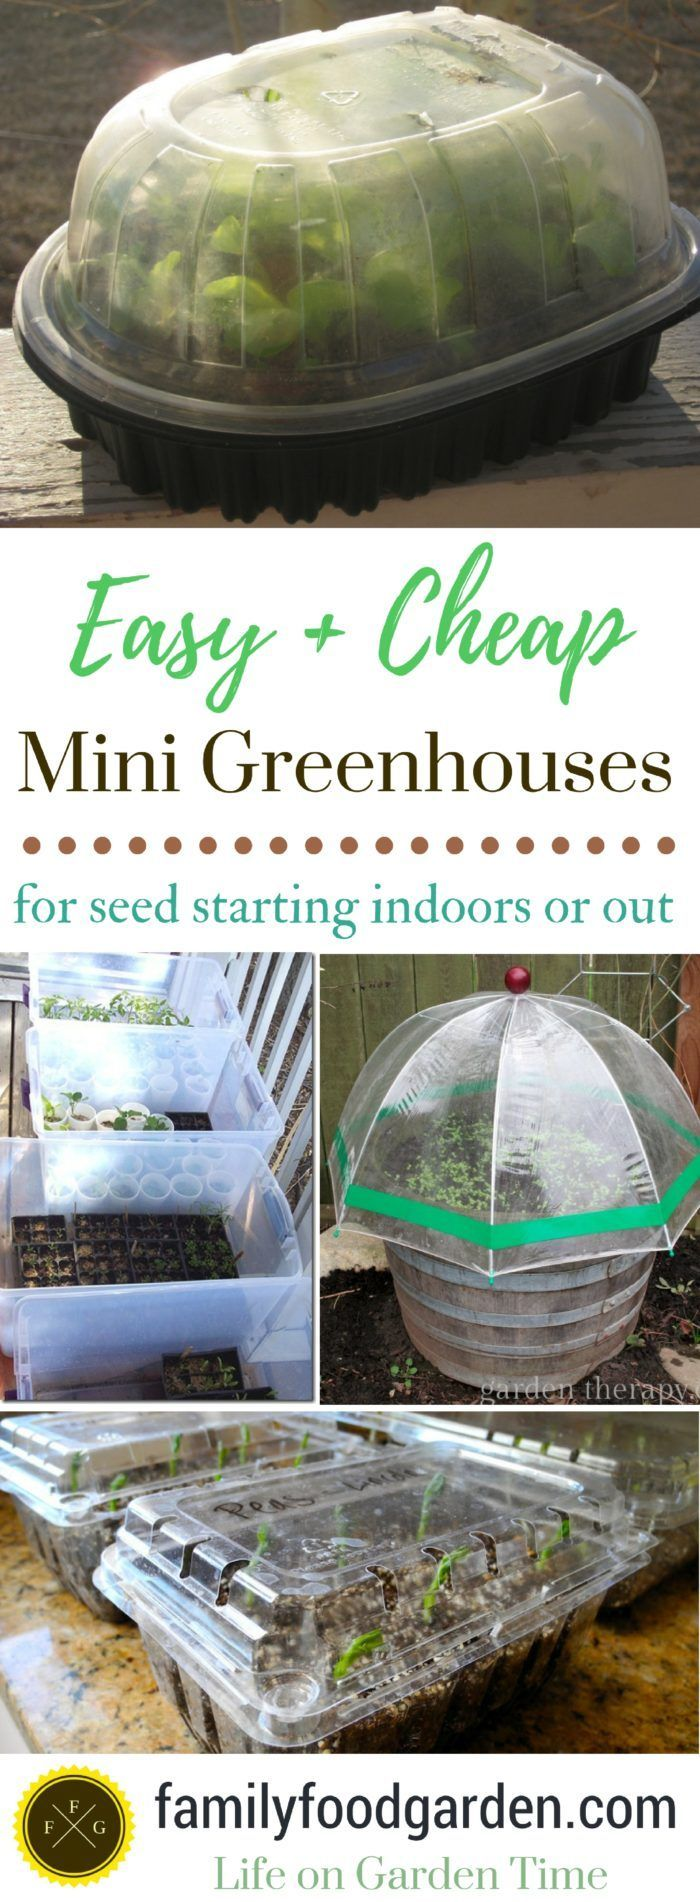 Ideas for cheap mini greenhouse for DIY garden ideas and seed starting #greenhousegardening